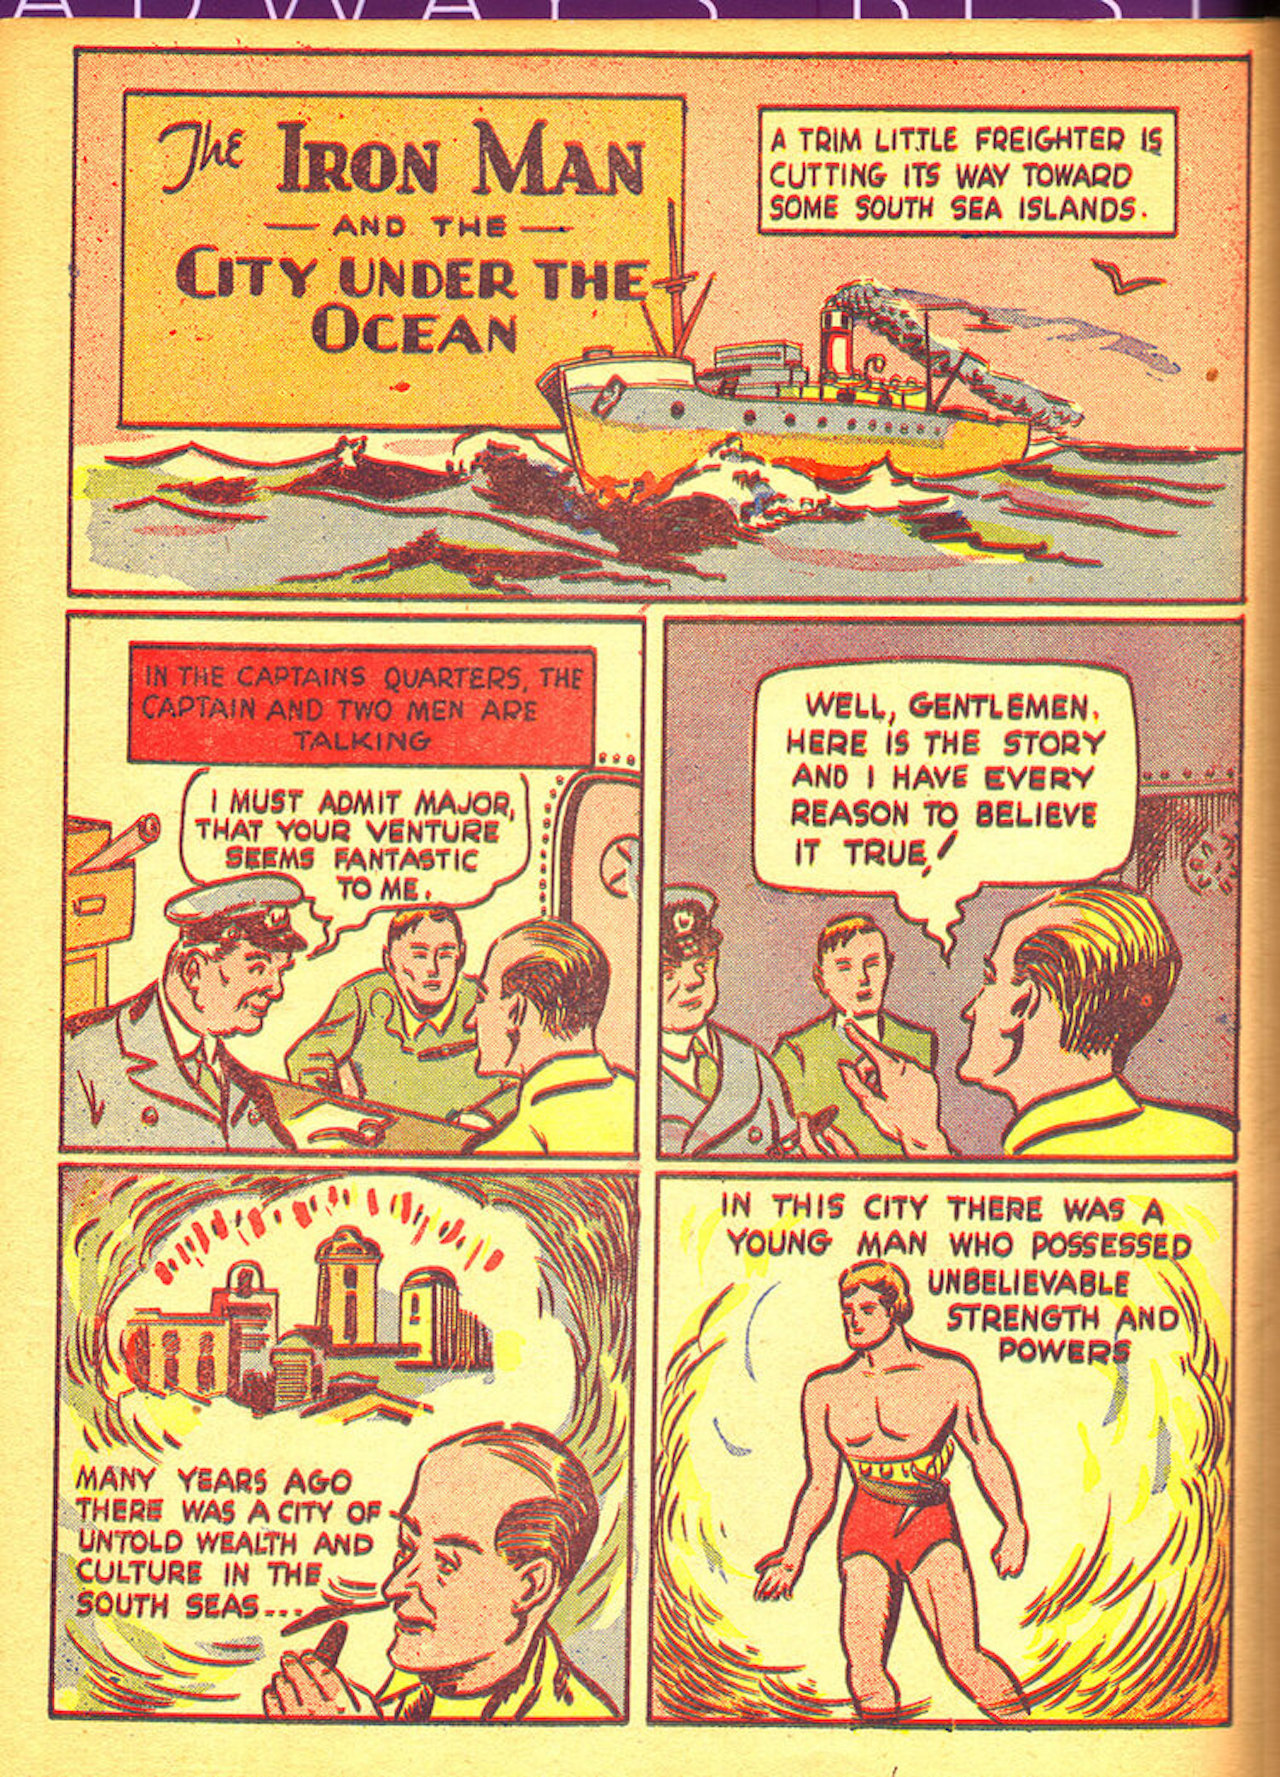 page of comic book featuring the exploits of the Iron Man